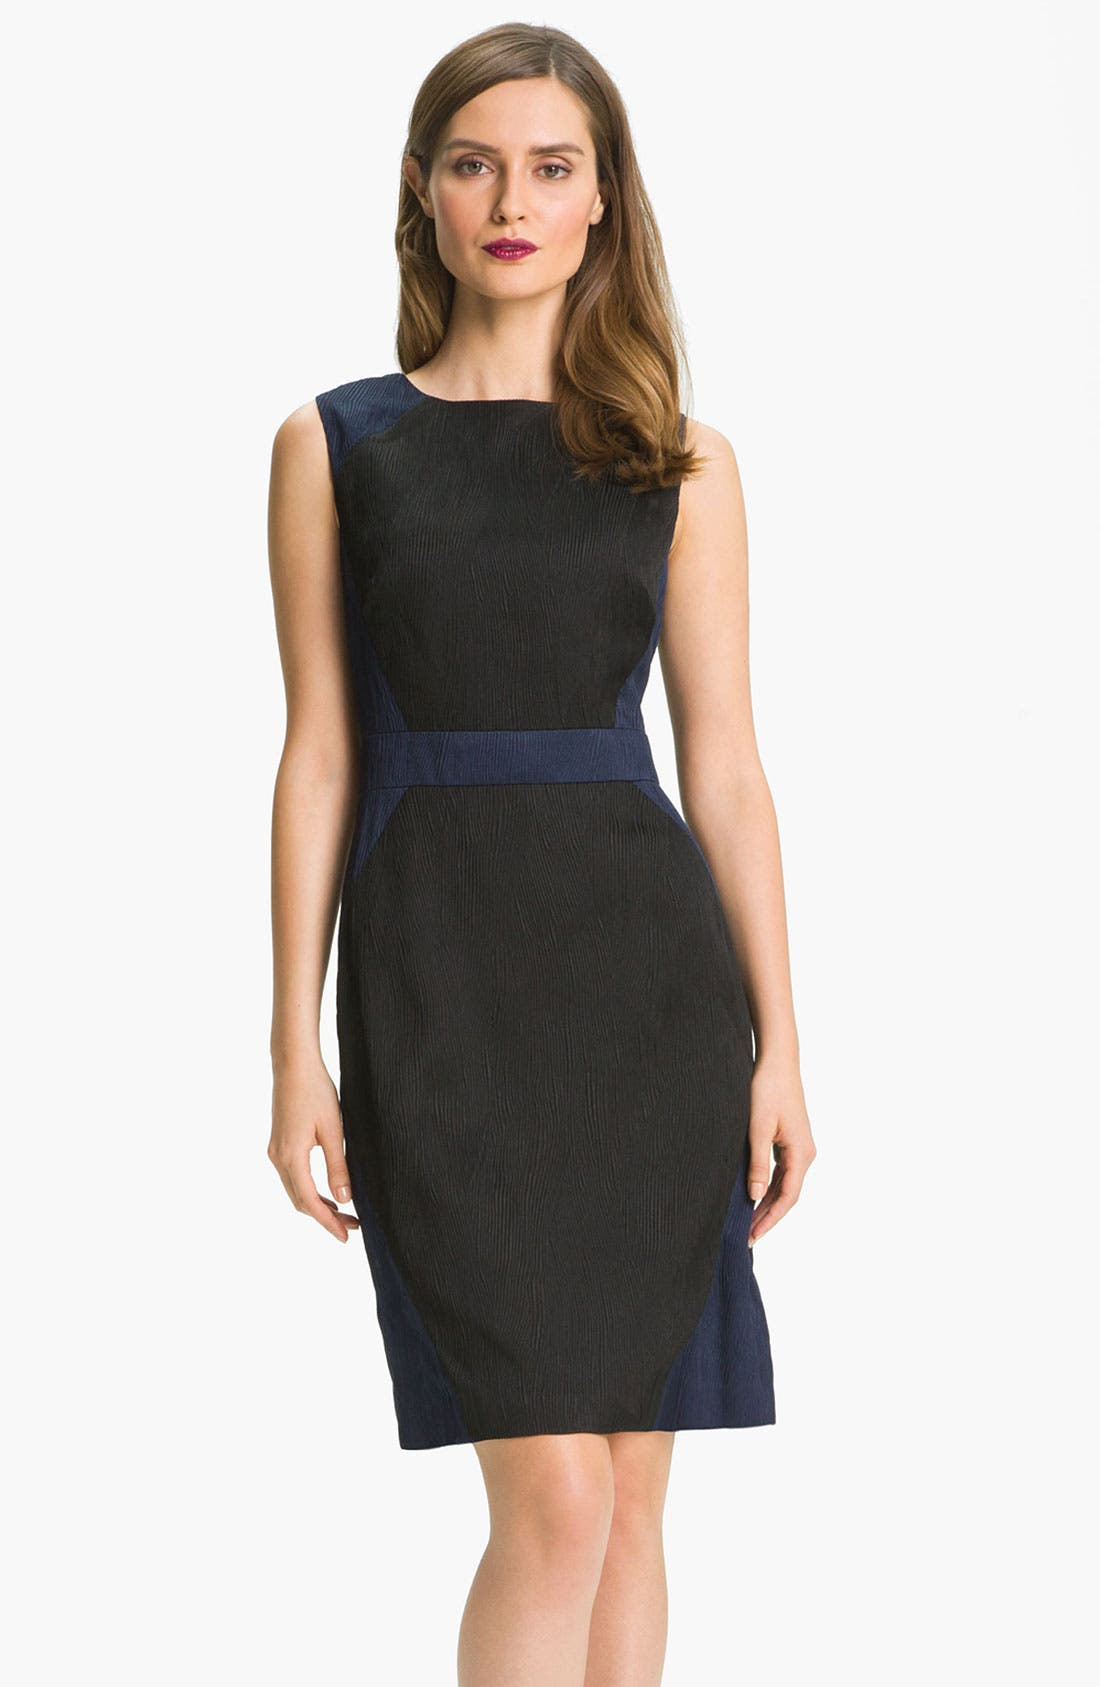 Alternate Image 1 Selected - Adrianna Papell Colorblock Jacquard Sheath Dress